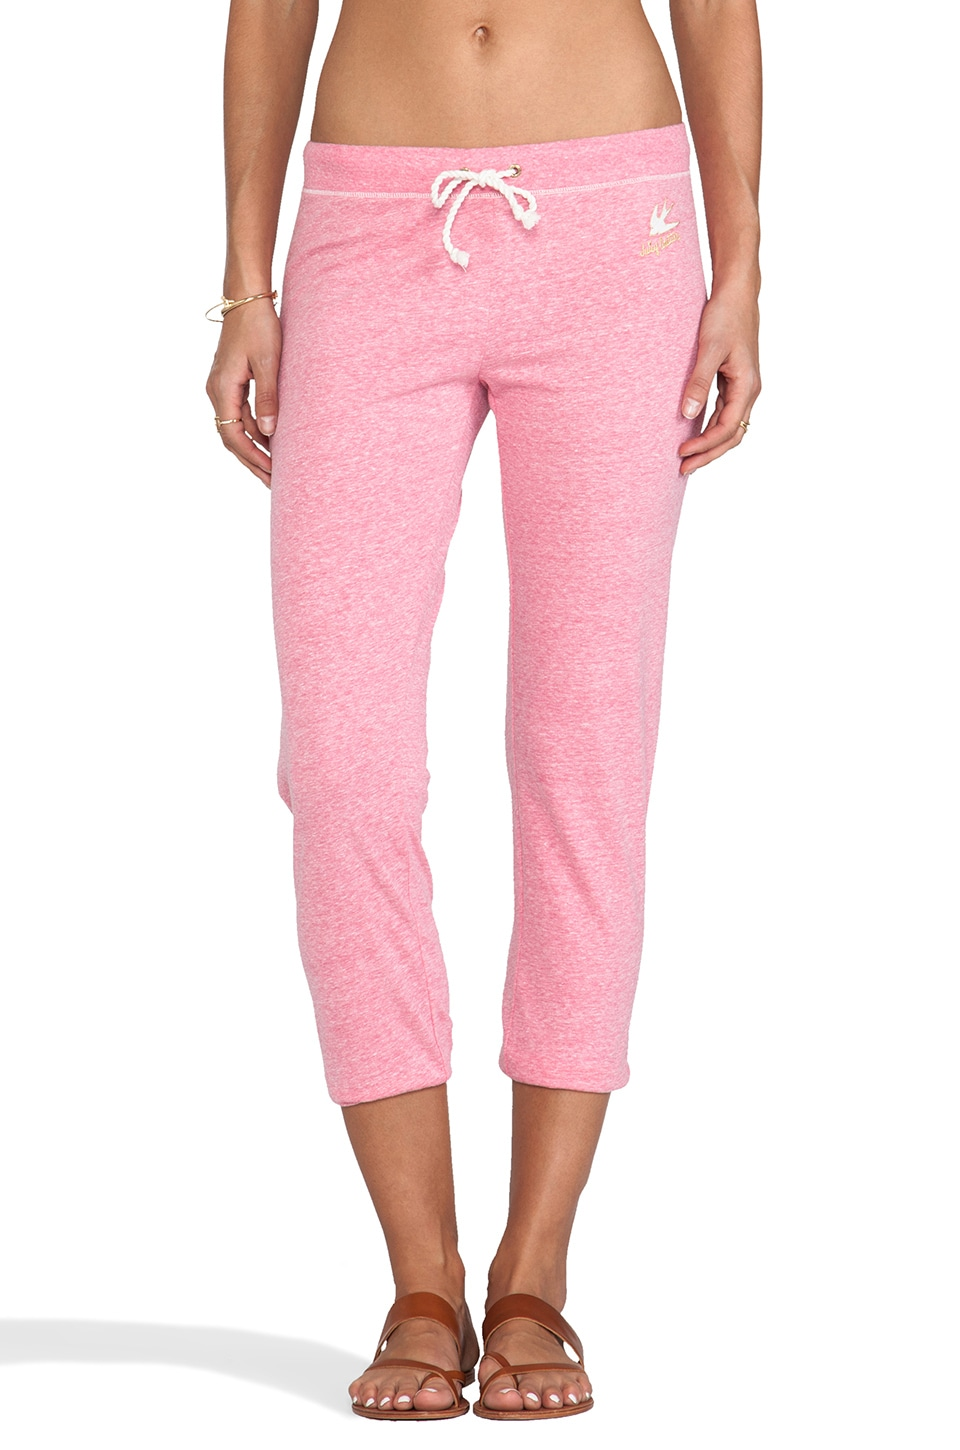 Juicy Couture Triblend Pant in Highlighter